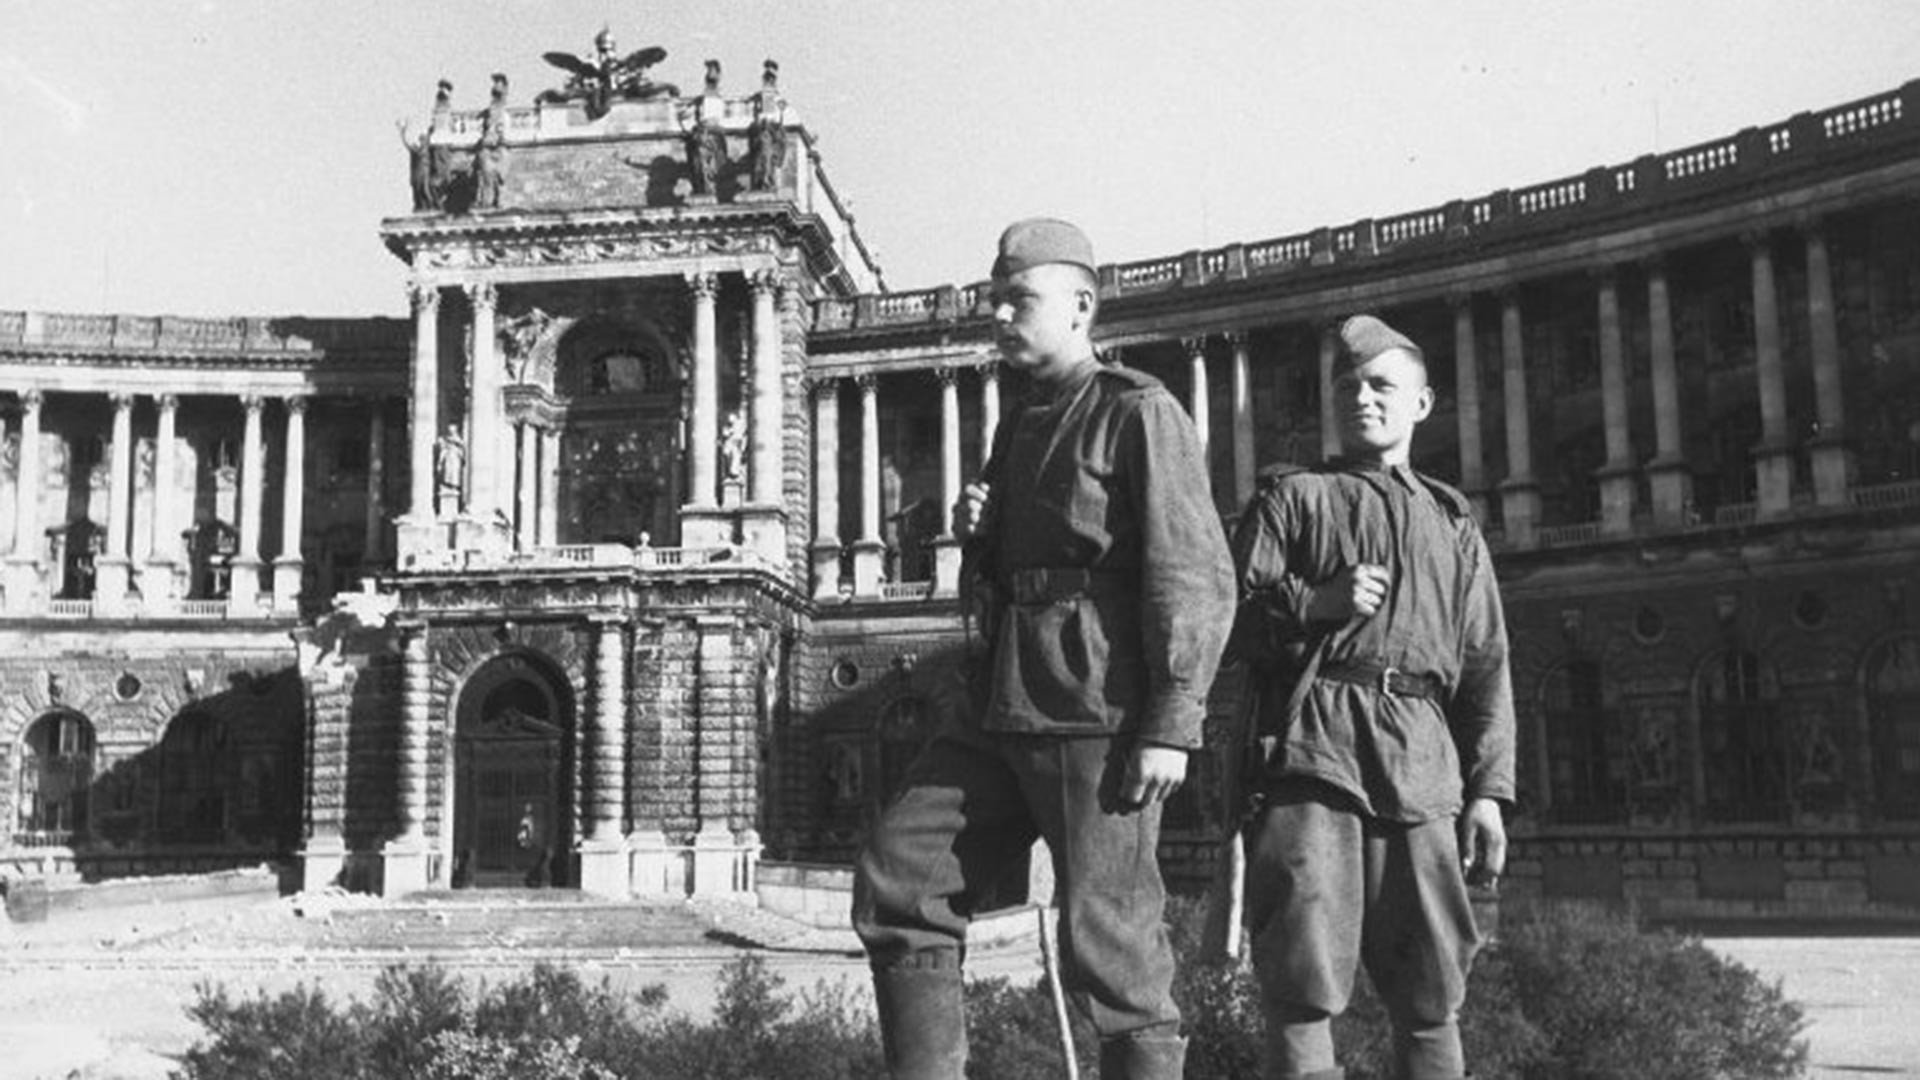 Soviet soldiers correspondents in front of Hofburg palace